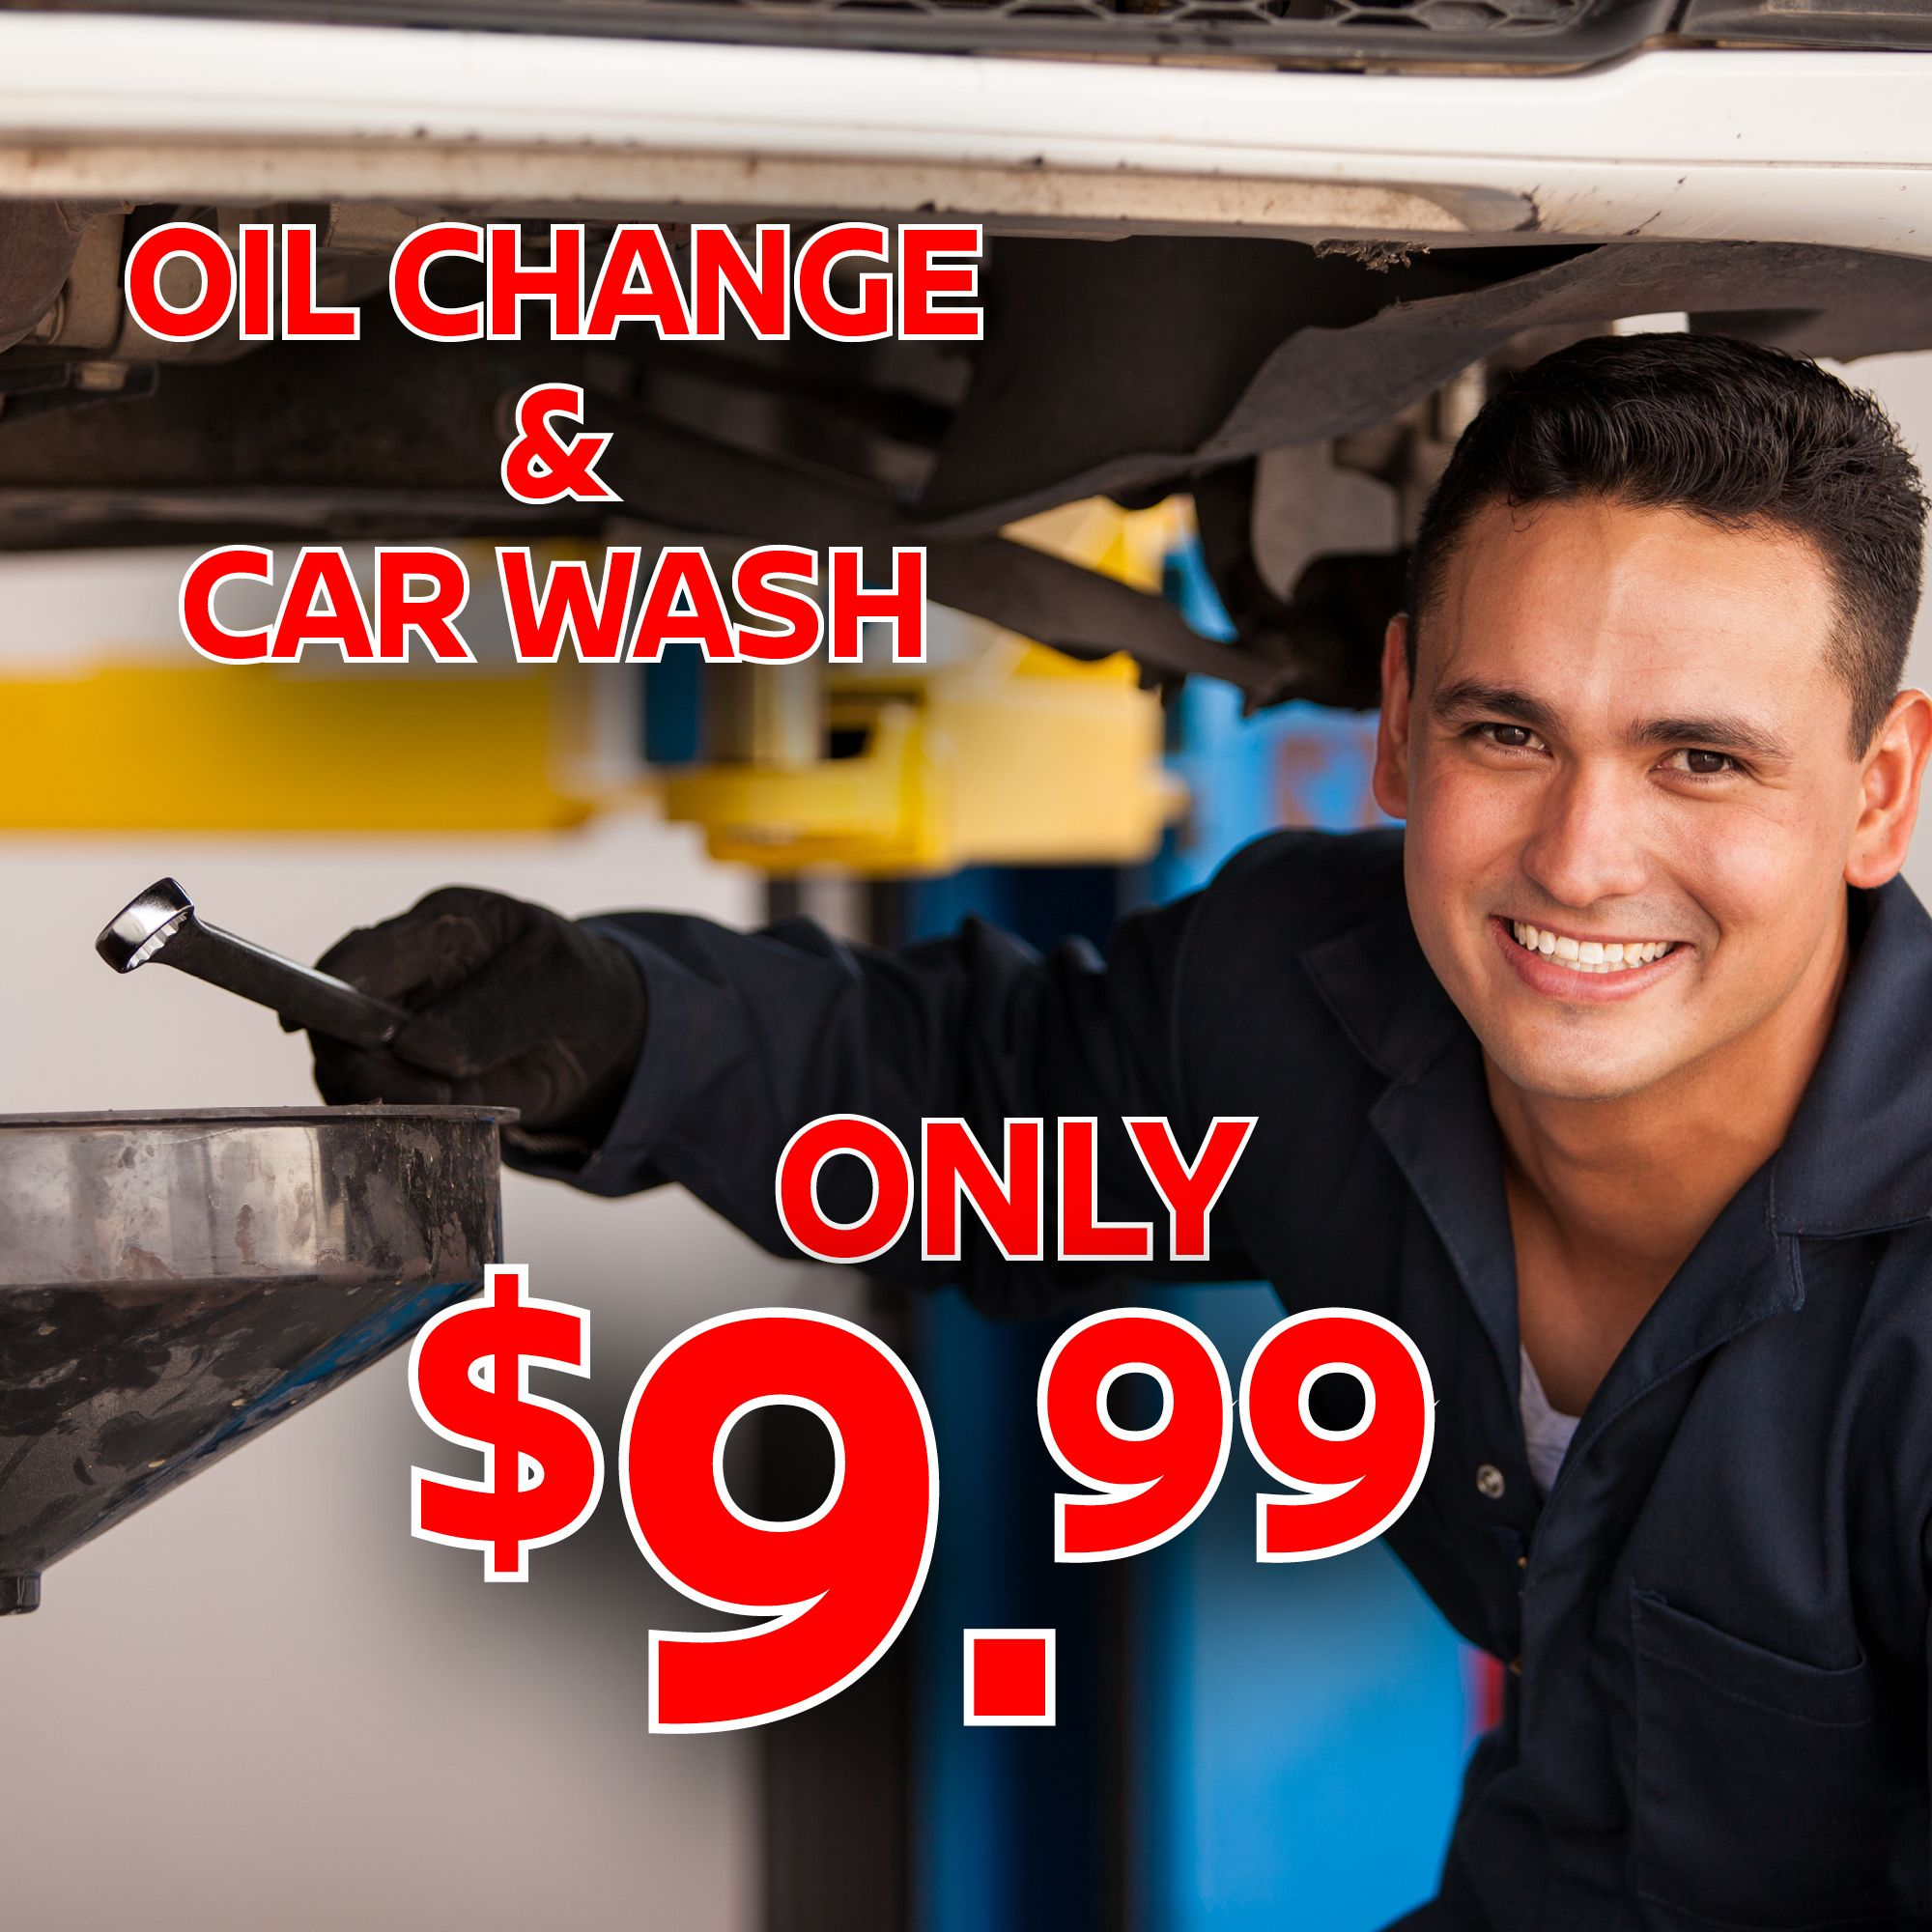 Deal of the week get an oil change and car wash for only